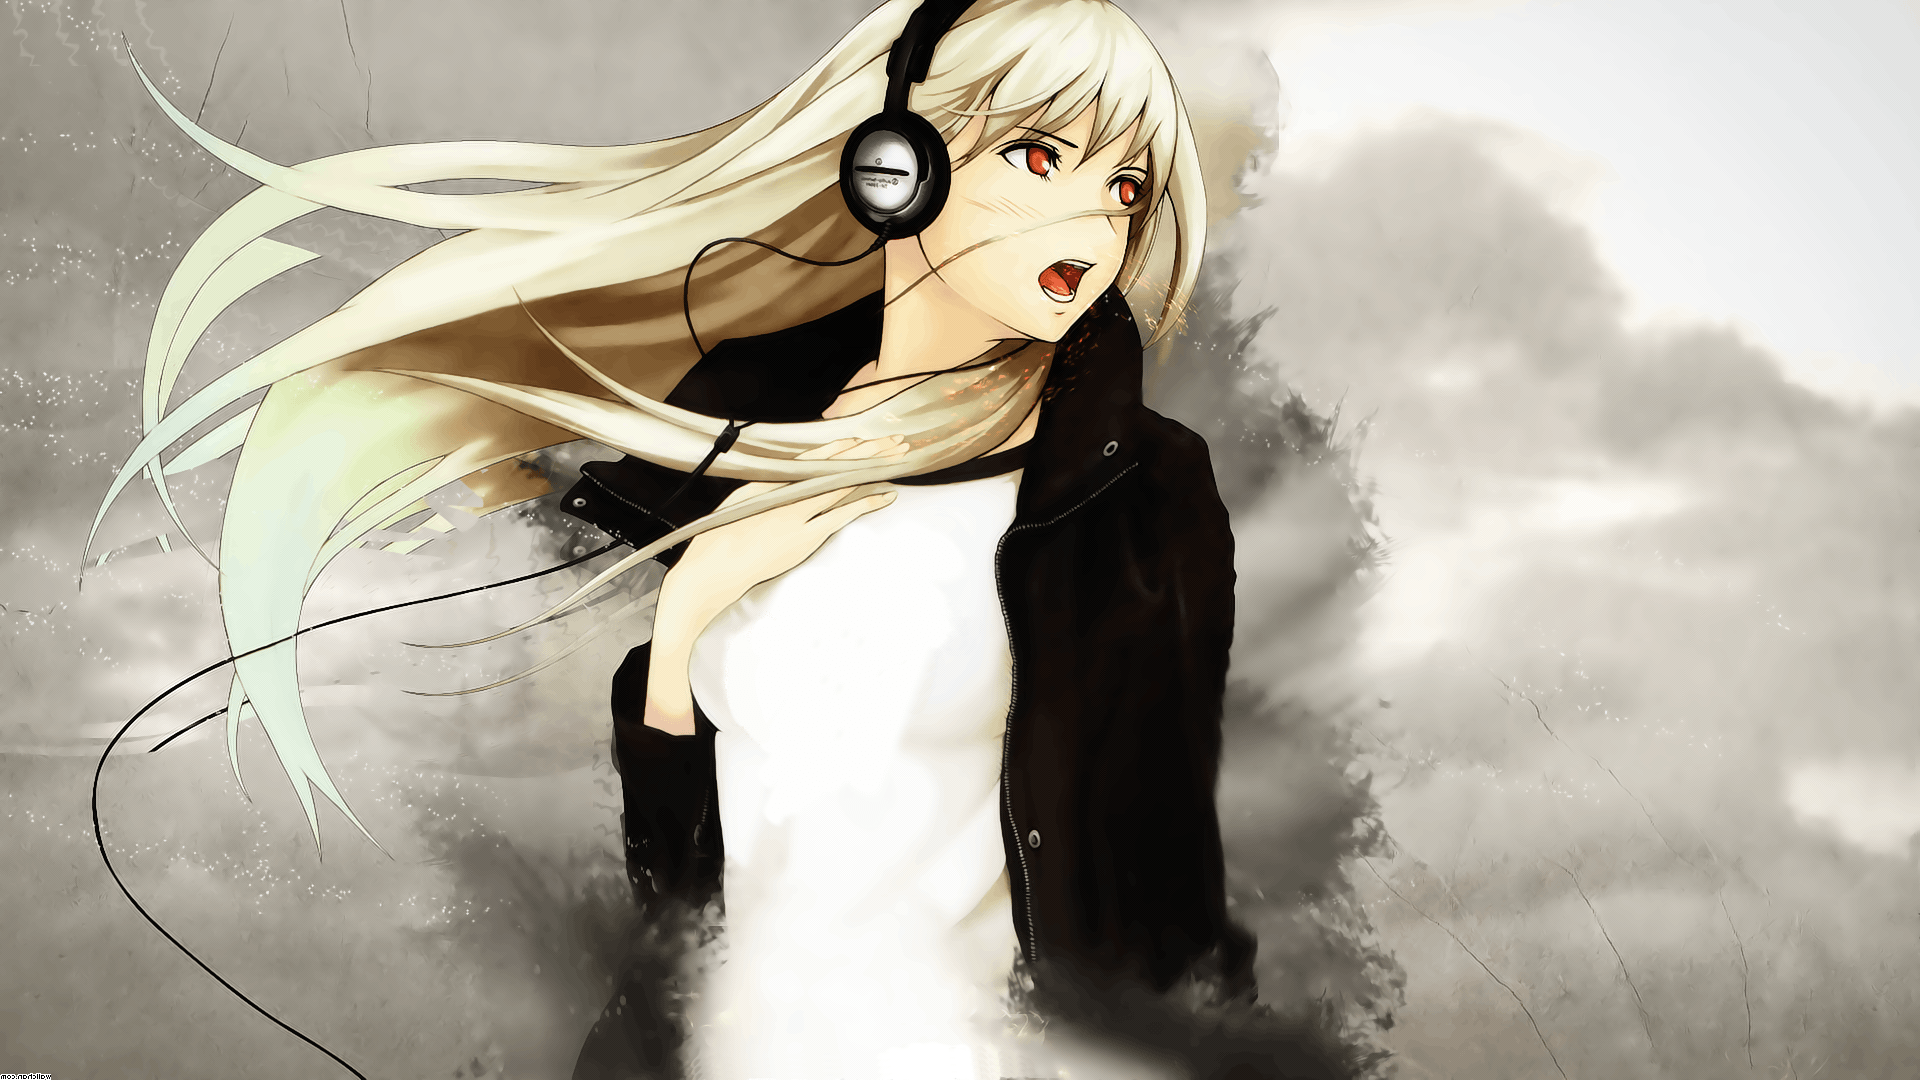 Anime Music Girls Wallpapers - Wallpaper Cave